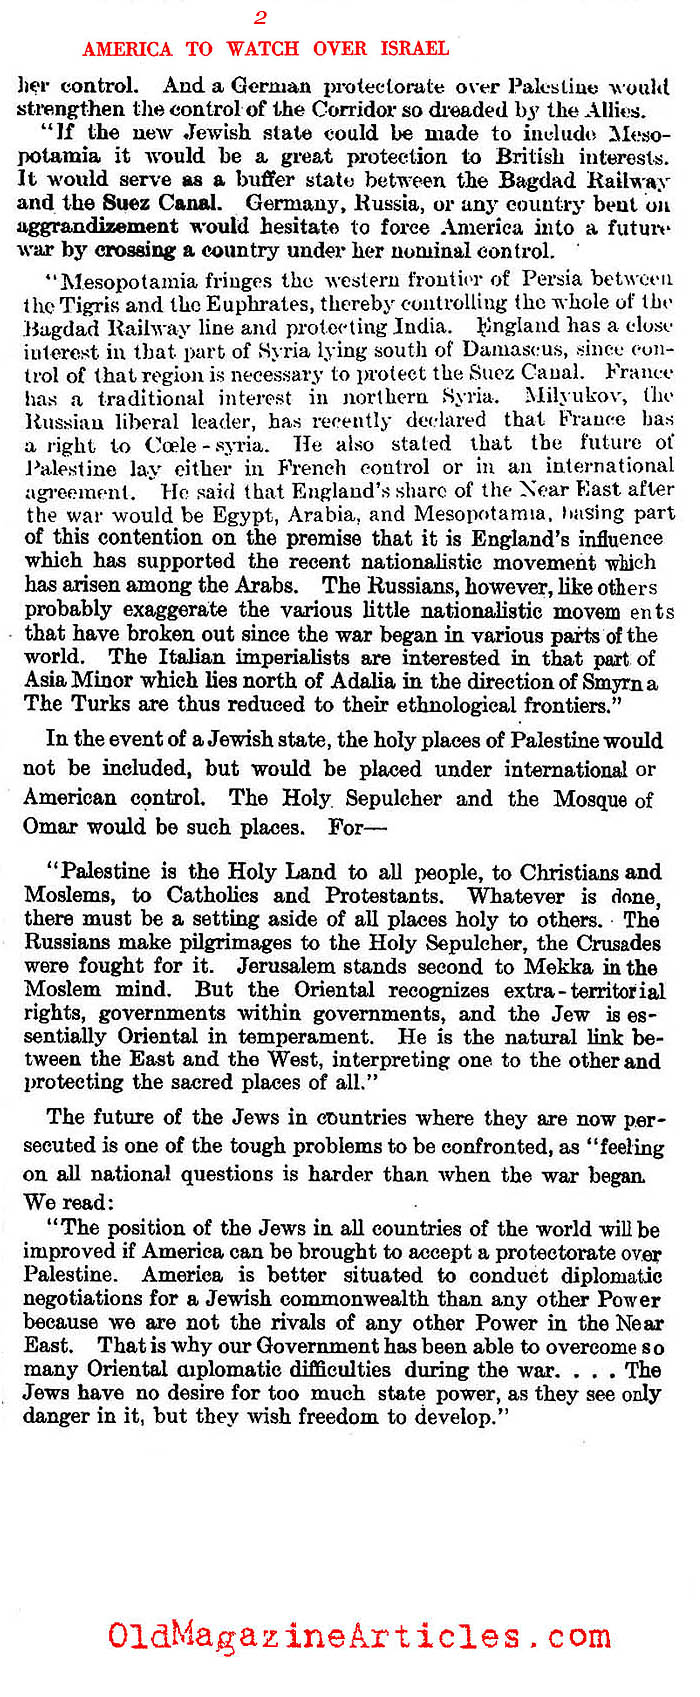 Anticipating America's Unique Relationship With Israel (Literary Digest, 1917)